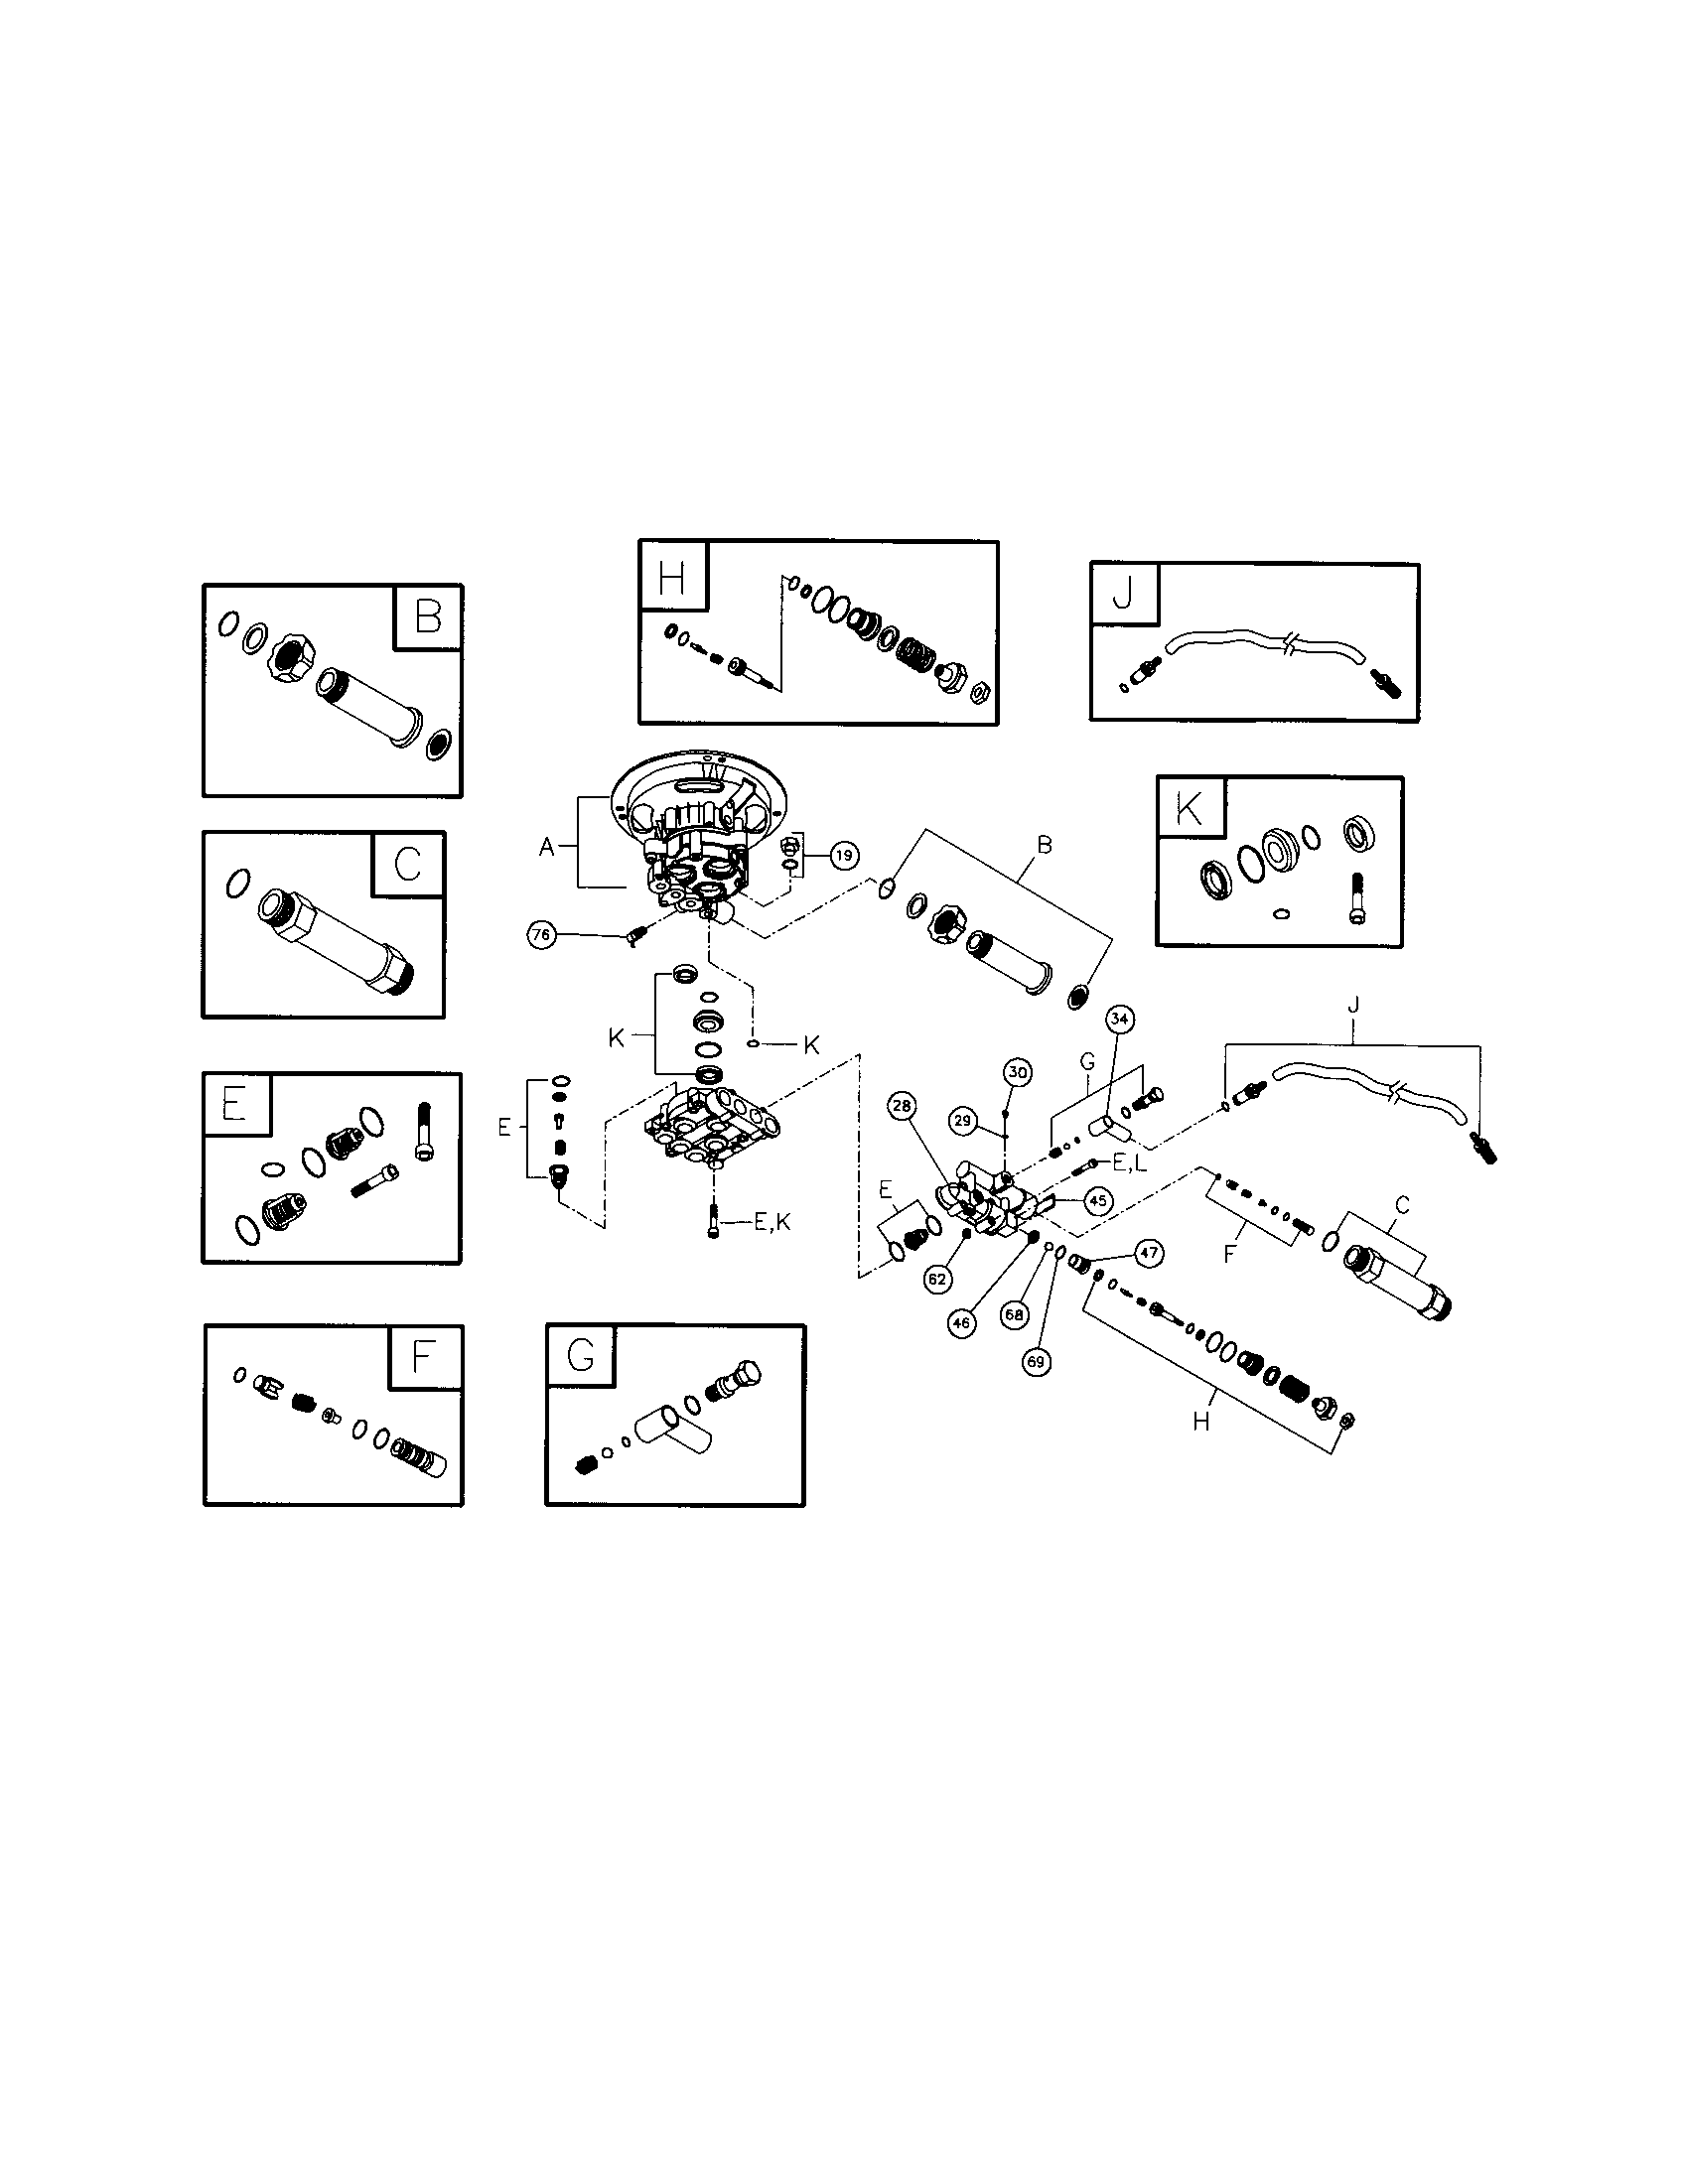 PUMP Diagram & Parts List for Model 0202060 BRIGGS